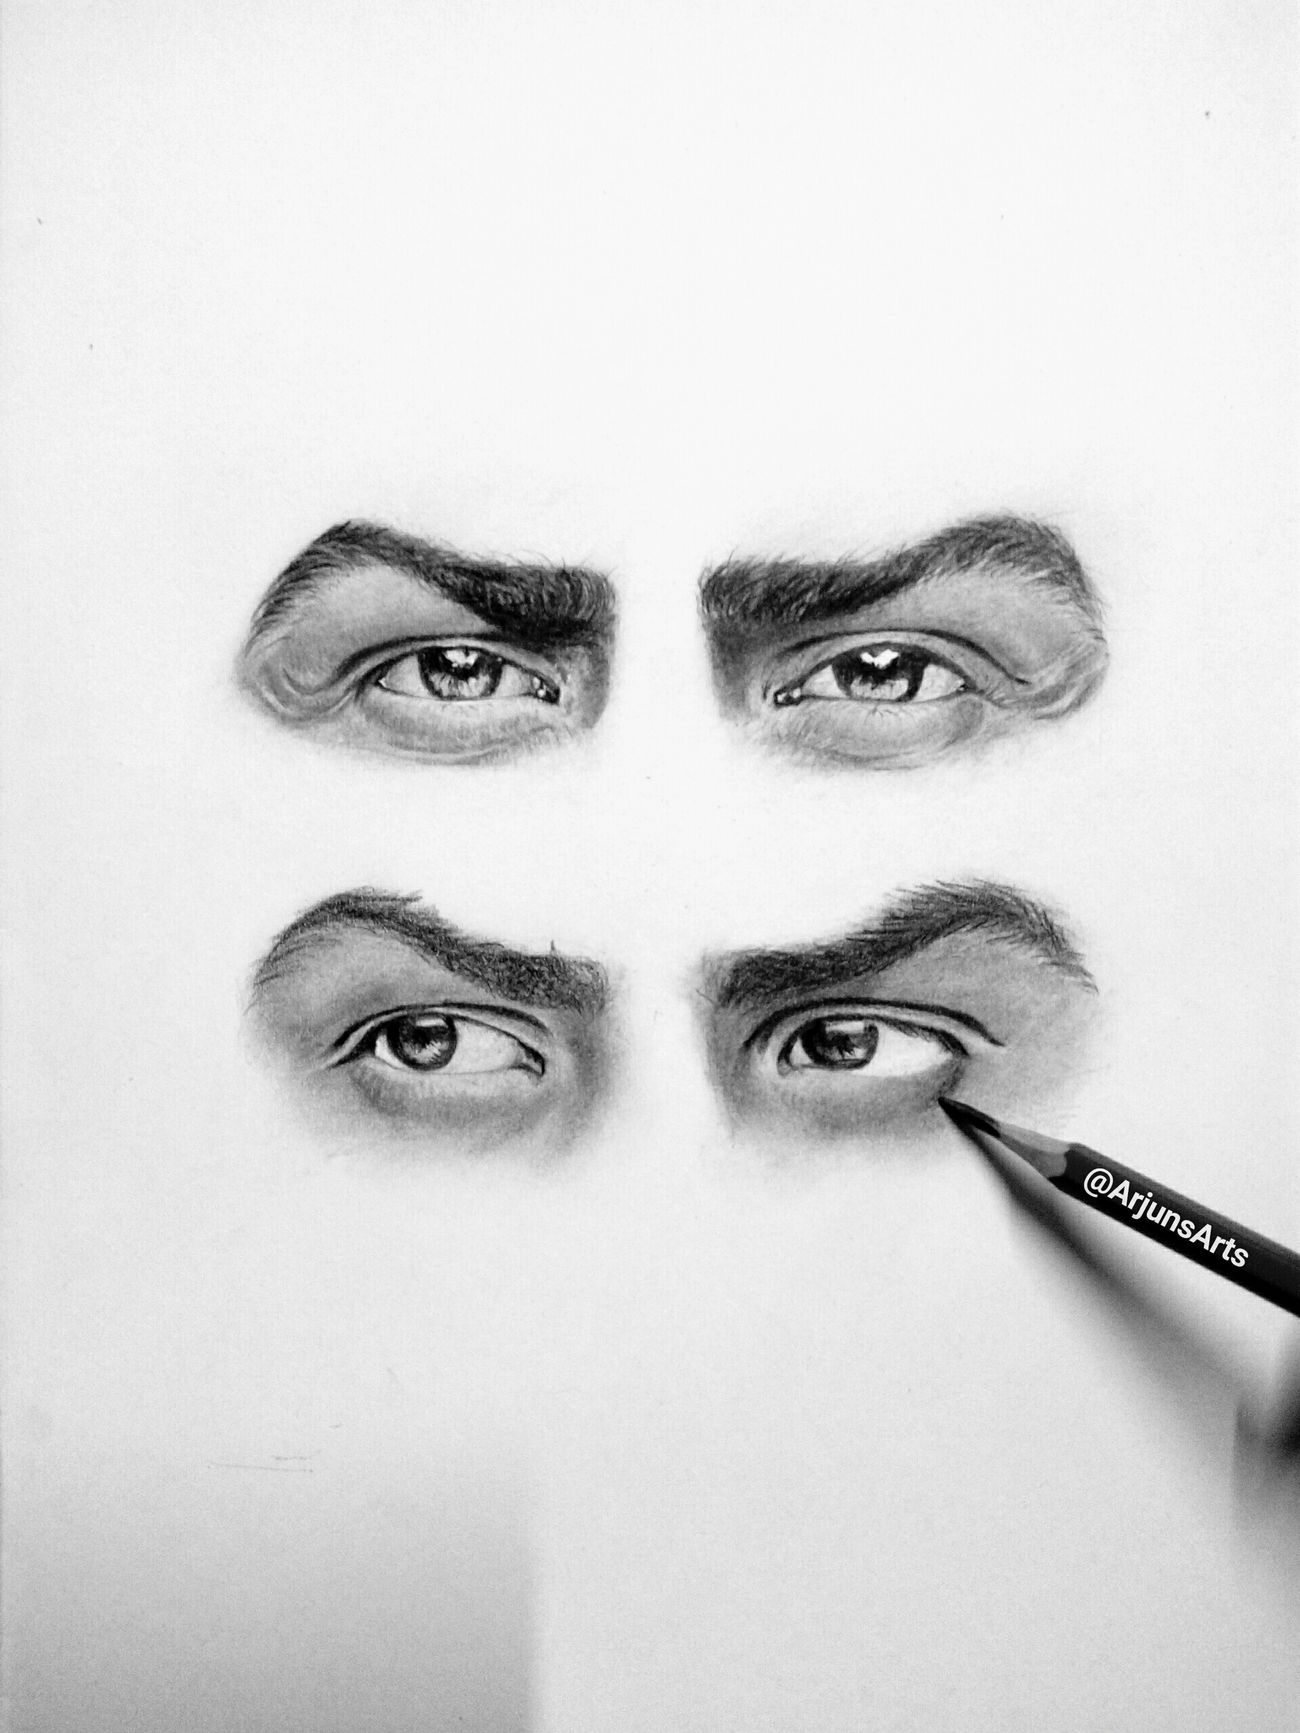 He is a king of bollywood... Eyes study💗 SRK... Srk MyArt Drawing Eye Shahrukhkhan Shah Rukh Khan Artist Beautiful Eyes Raees Art Portrait Sketch Amazing Inspiration Painting India KingKhan Myartwork ArtWork Bollywood Ddlj Eyebrows Actor Peinture